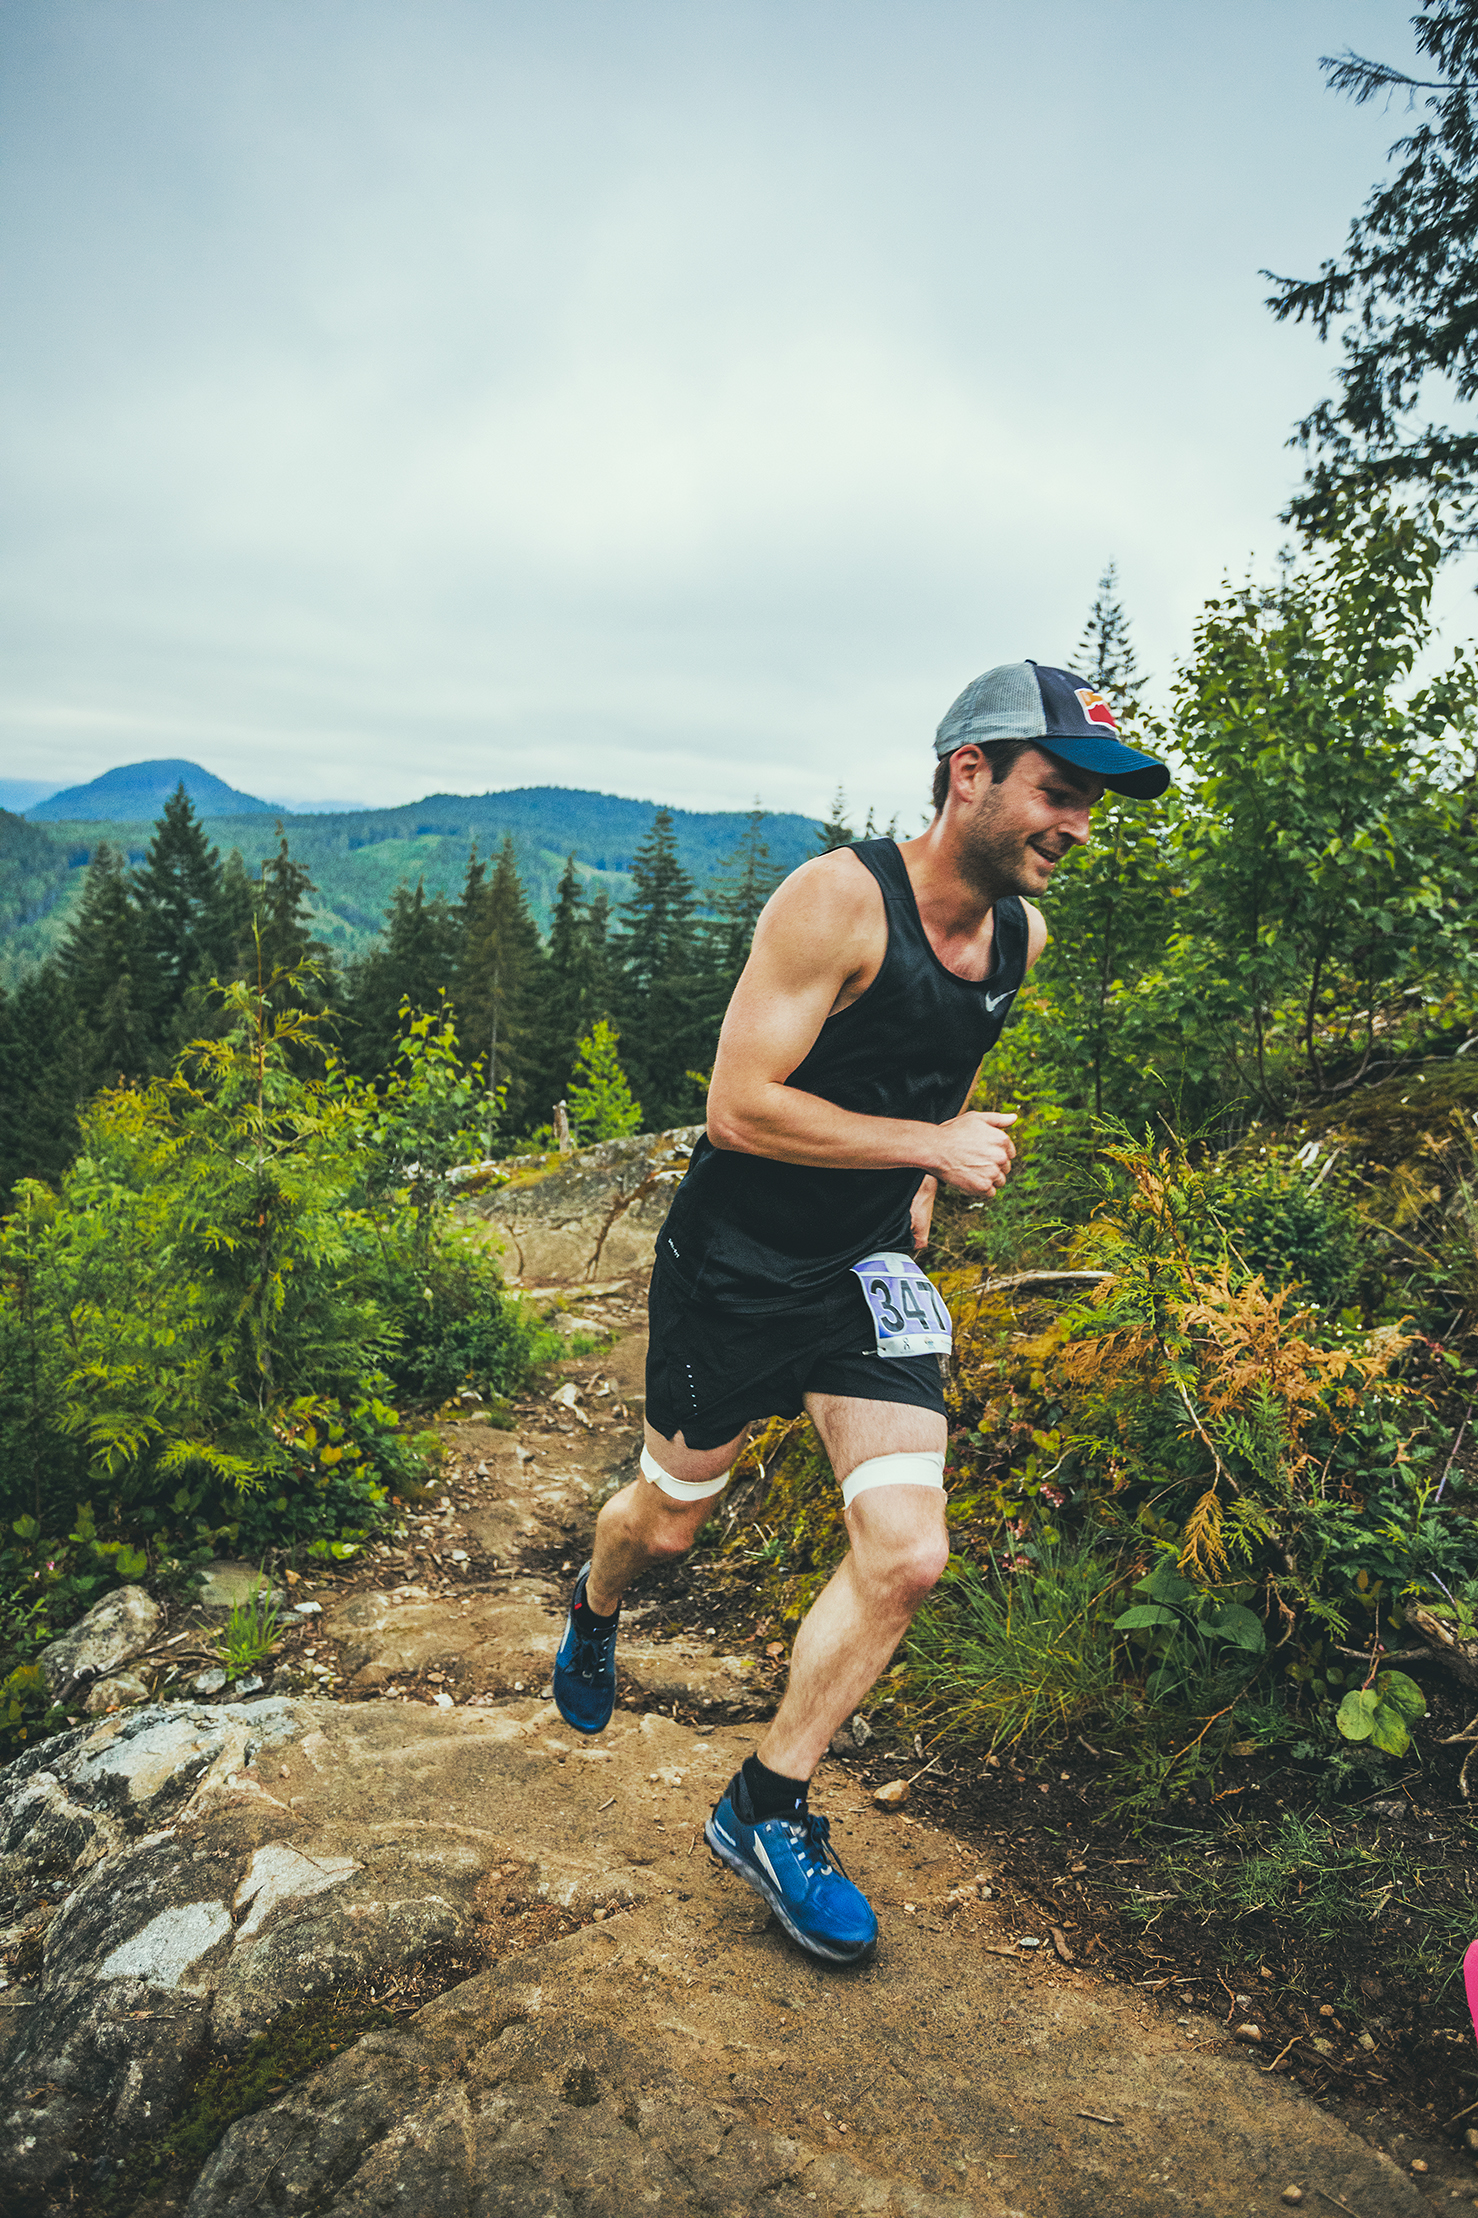 Fraser Valley Trail Races - Bear Mountain - IMG_1414 by Brice Ferre Studio - Vancouver Portrait Adventure and Athlete Photographer.jpg